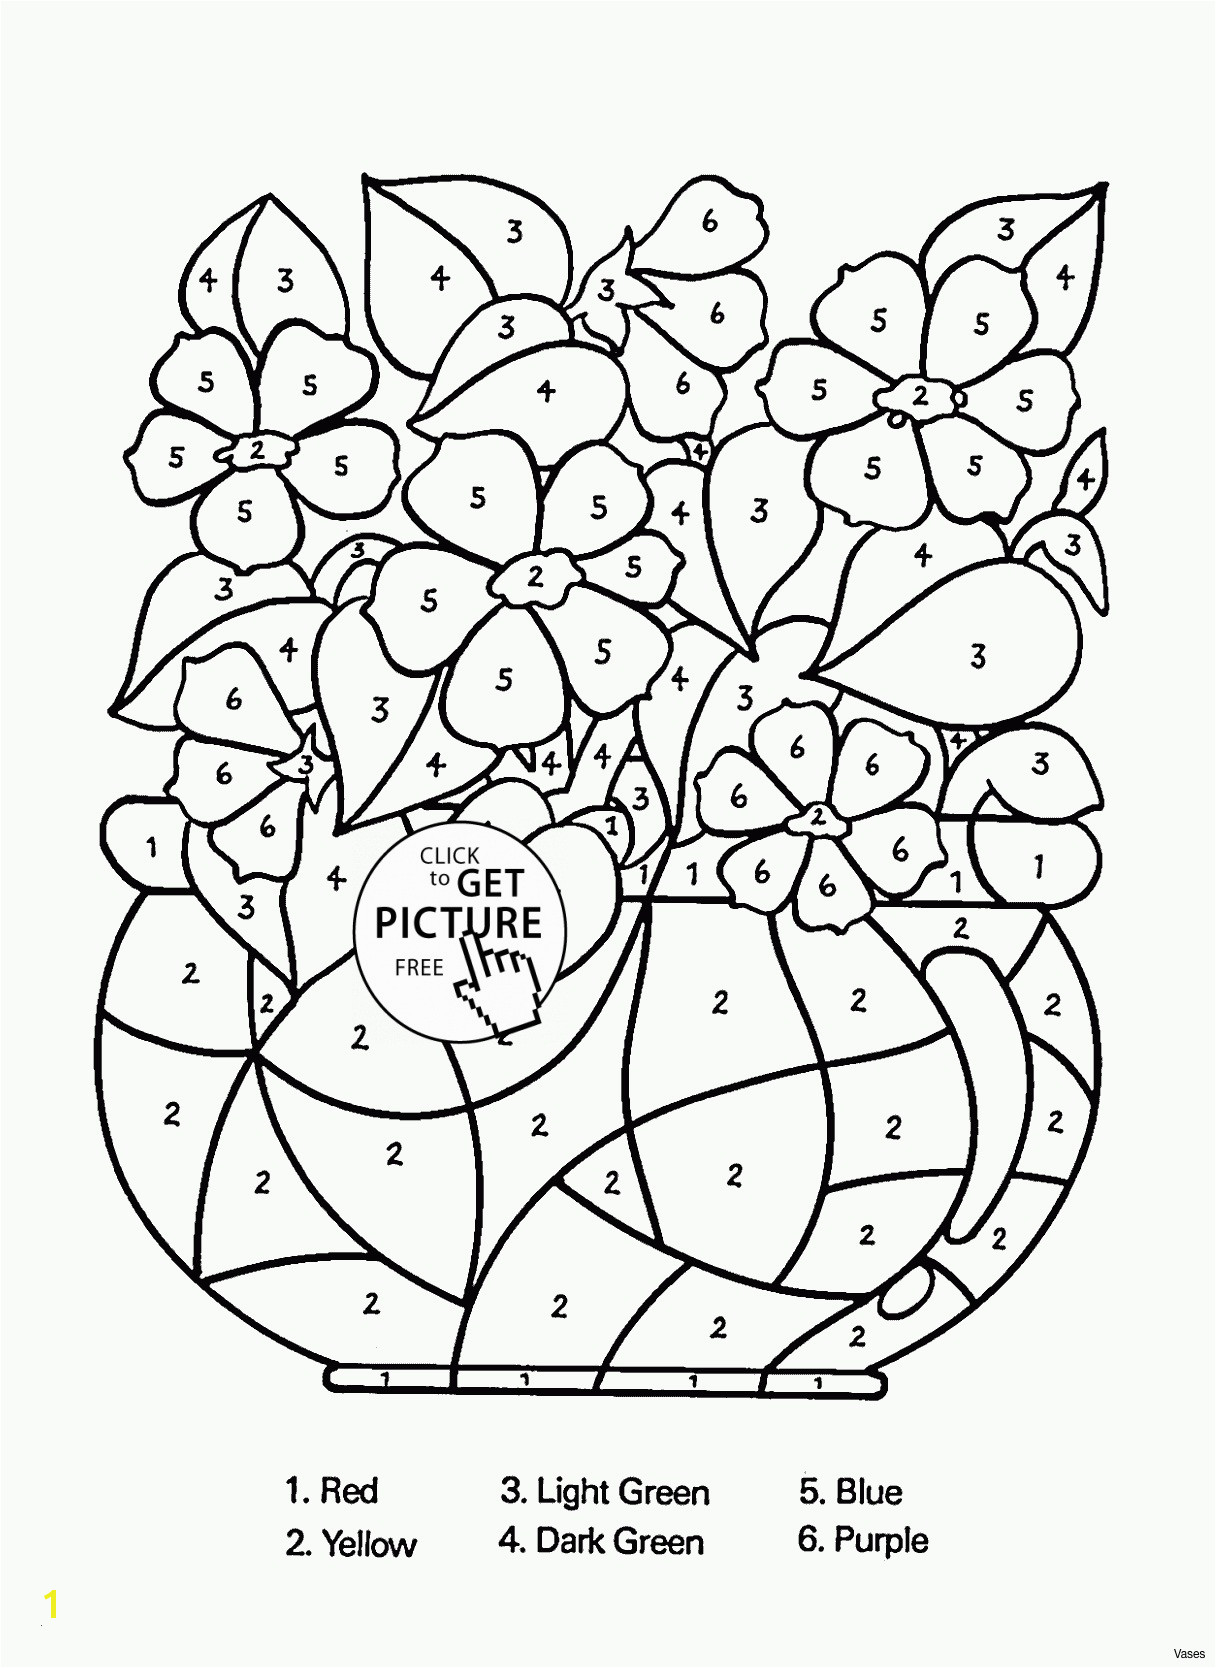 Queen Coloring Page New Cool Vases Flower Vase Coloring Page Pages Flowers In A top I